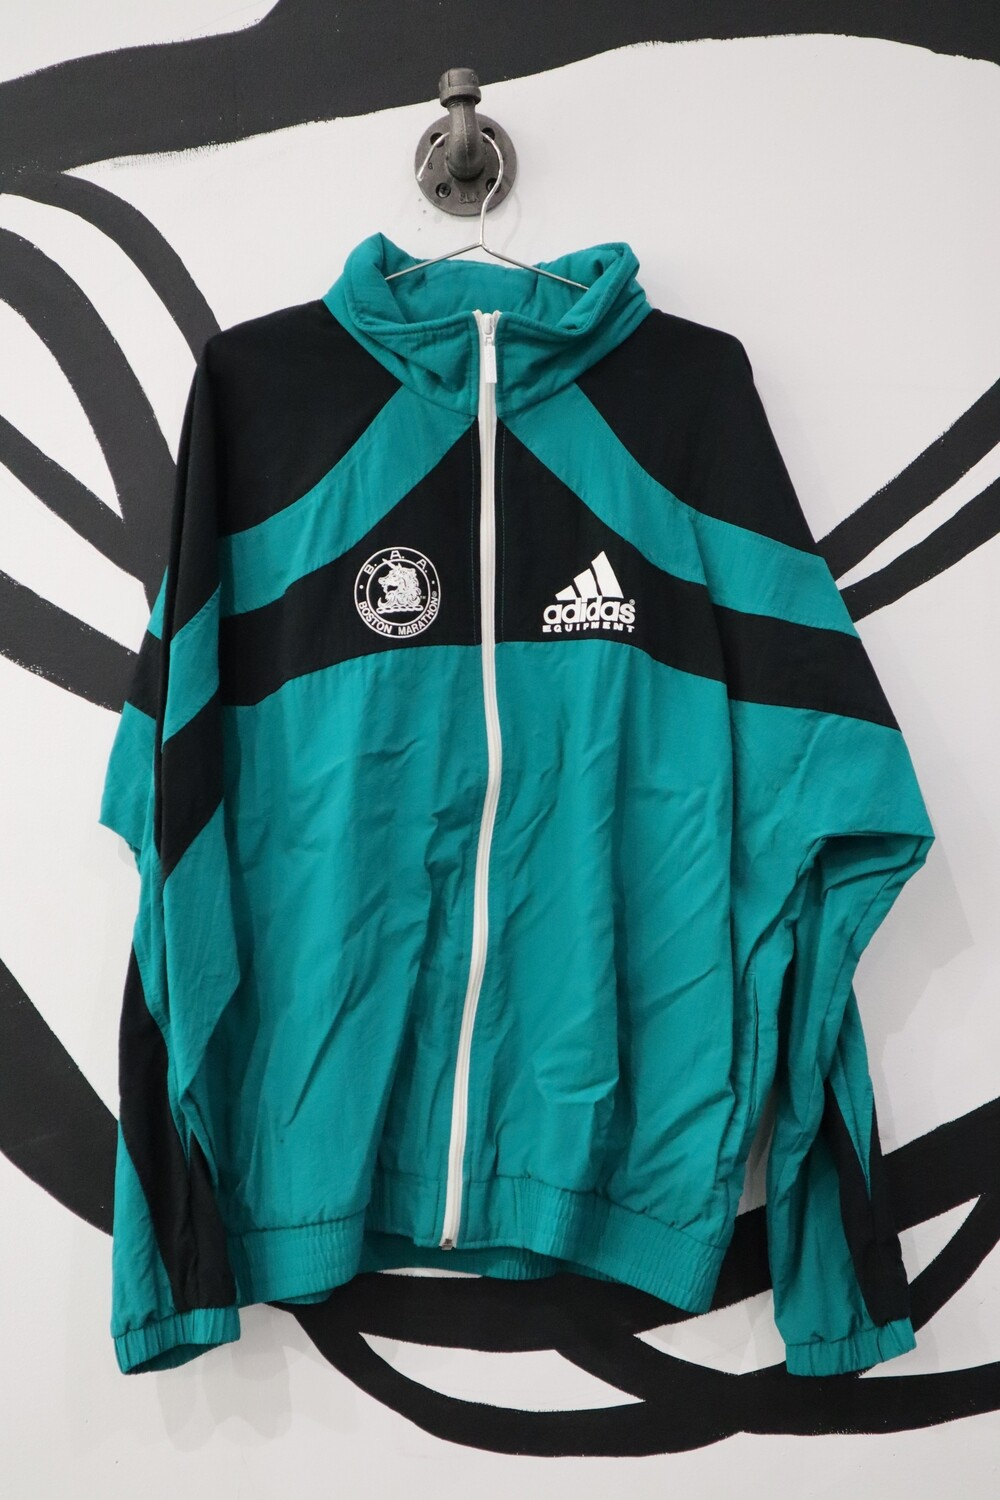 Adidas 1993 Boston Marathon Windbreaker